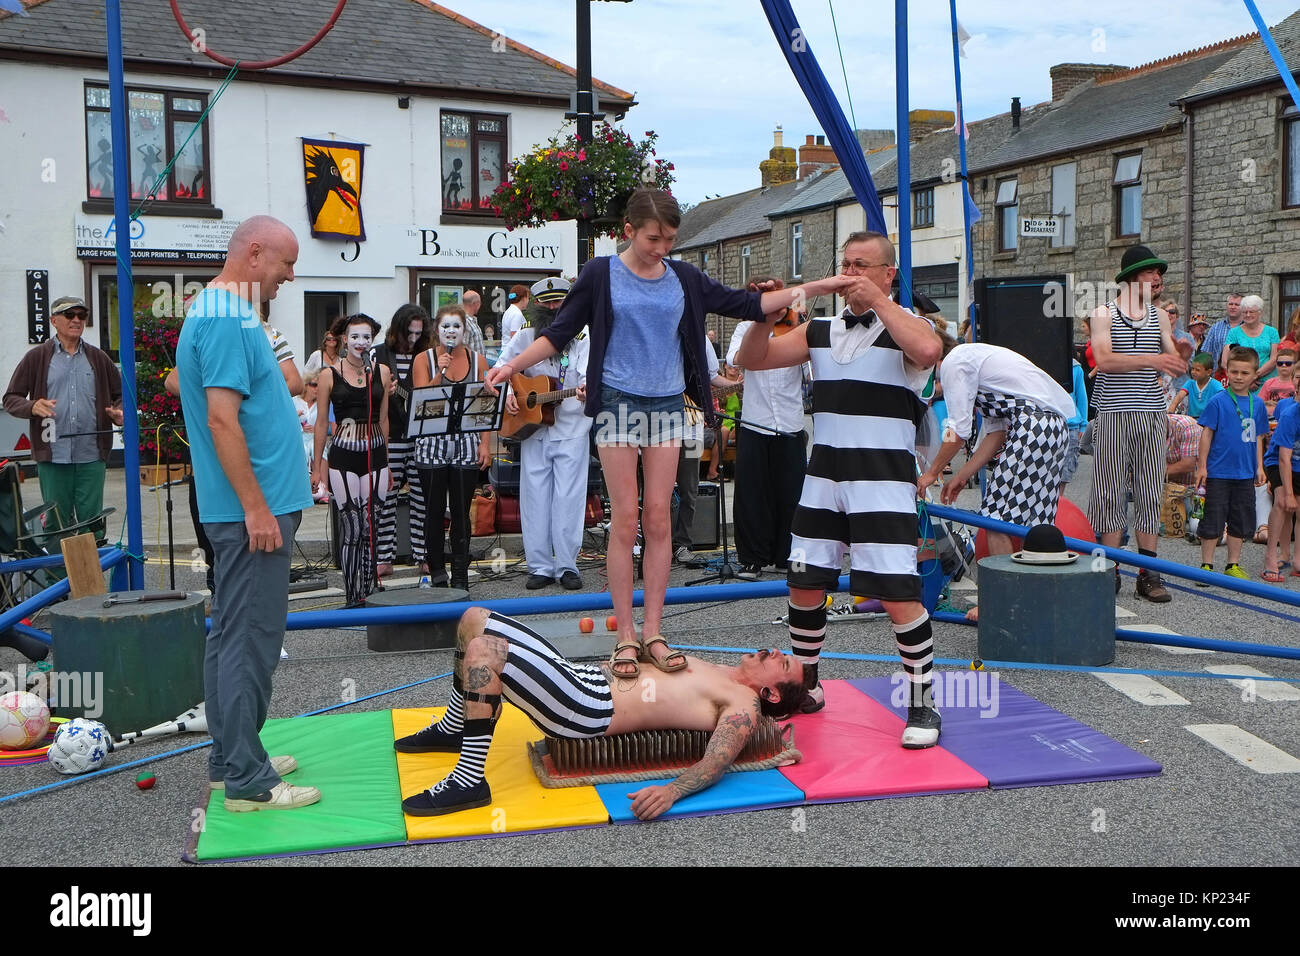 """performance of the """" bed of nails """" trick at the lafrowda festival in st.just, cornwall, england, uk. - Stock Image"""